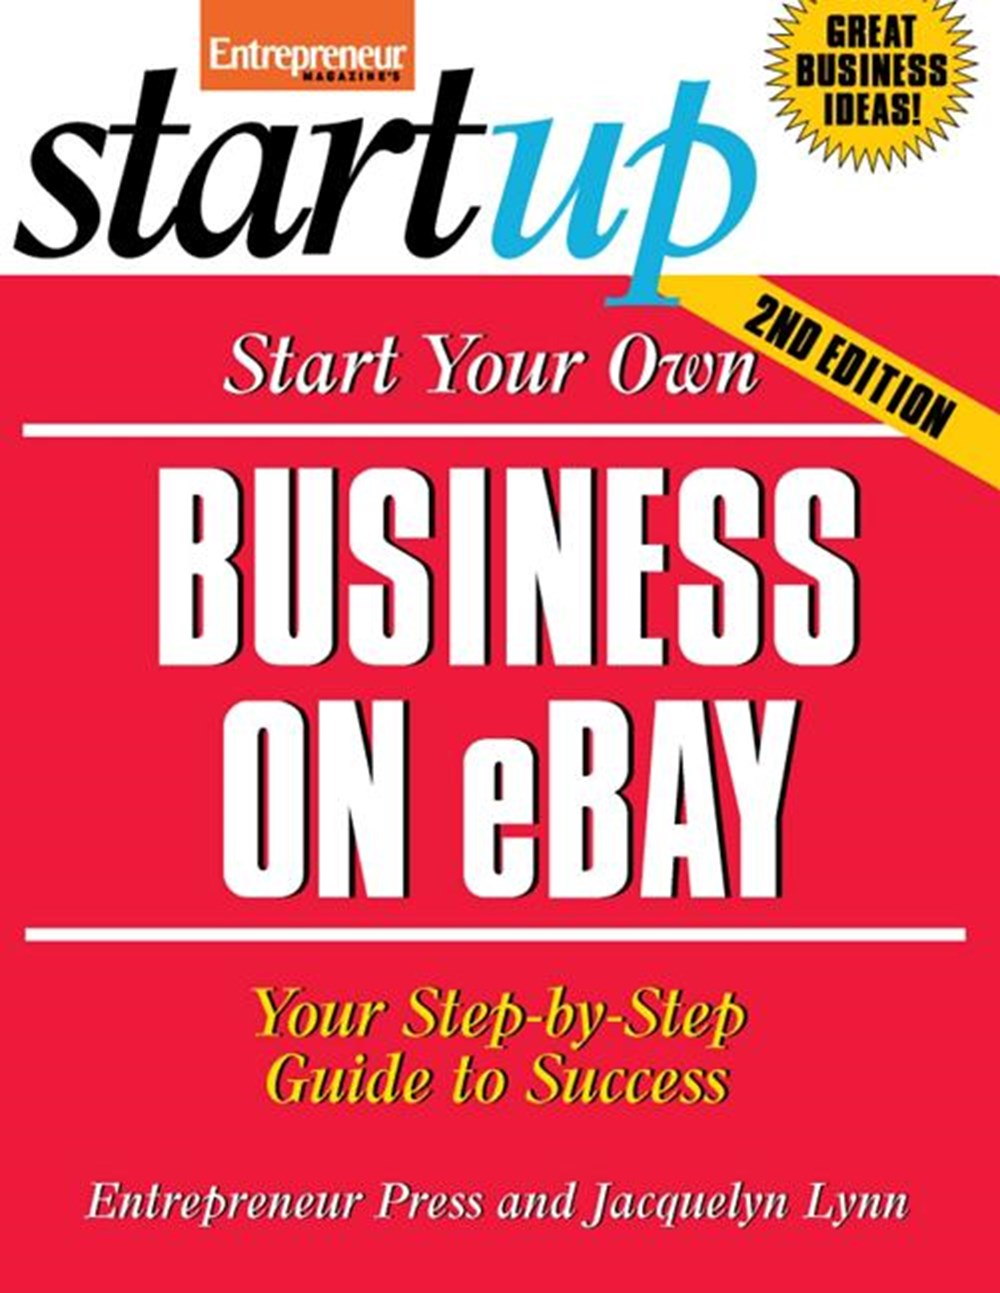 Start Your Own Business On Ebay Your Step By Step Guide To Success By Entrepreneur Press